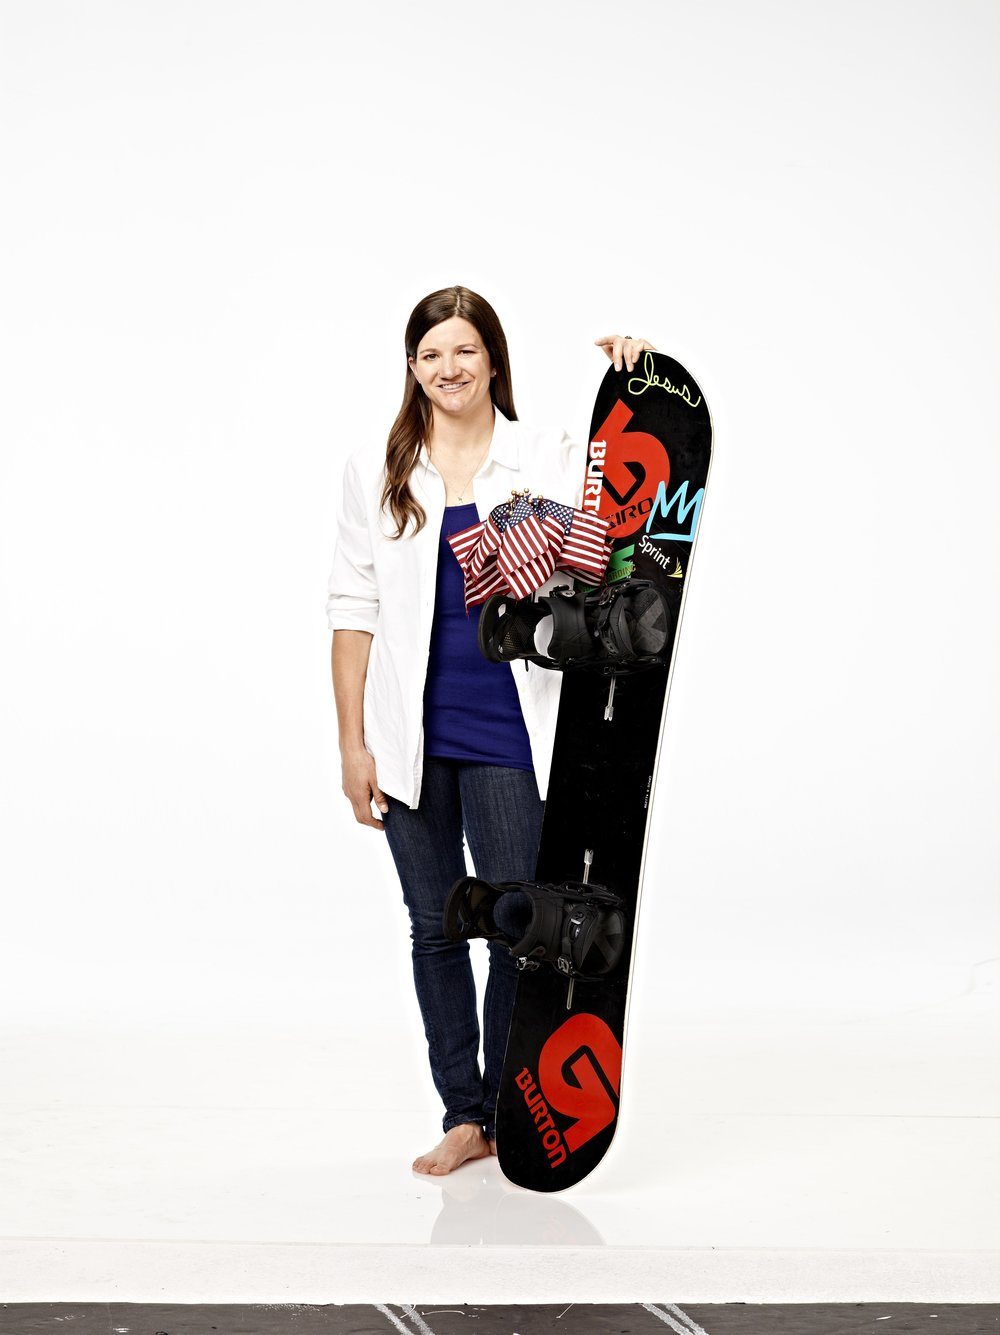 FEATURED EPISODE - We had the chance to talk with Kelly Clark, 6x Olympian just before the release of her motivational book,